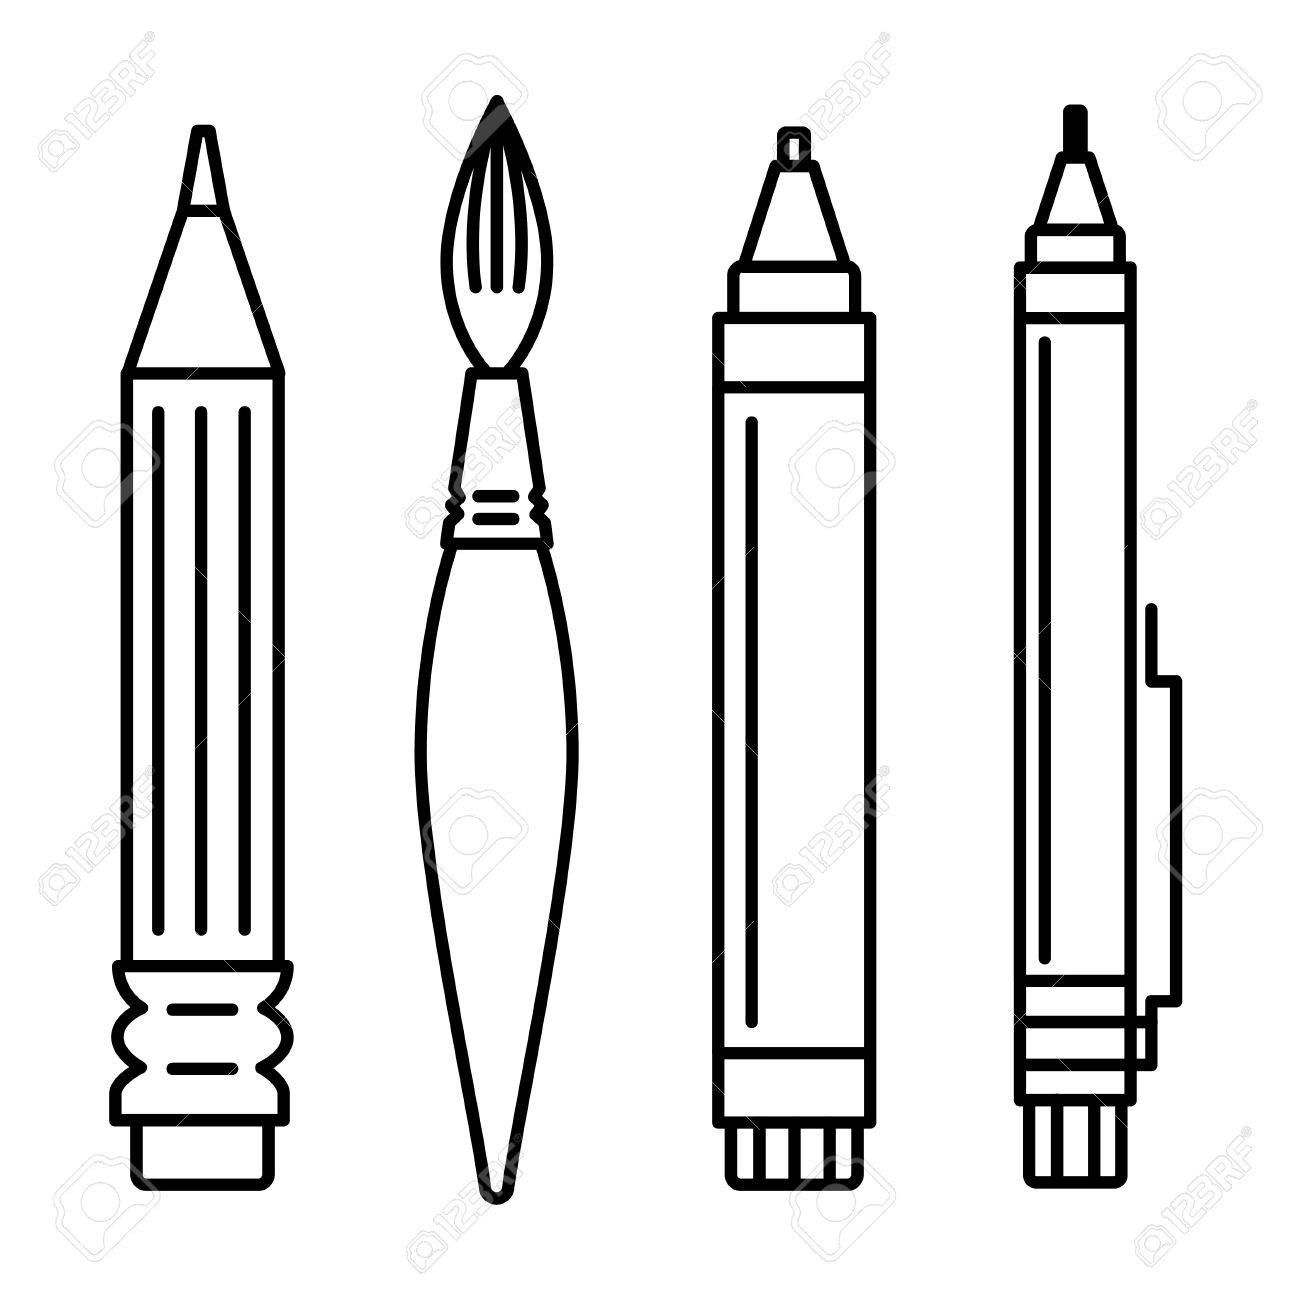 Line art vector illustration set of icons for art supplies art tools for painting